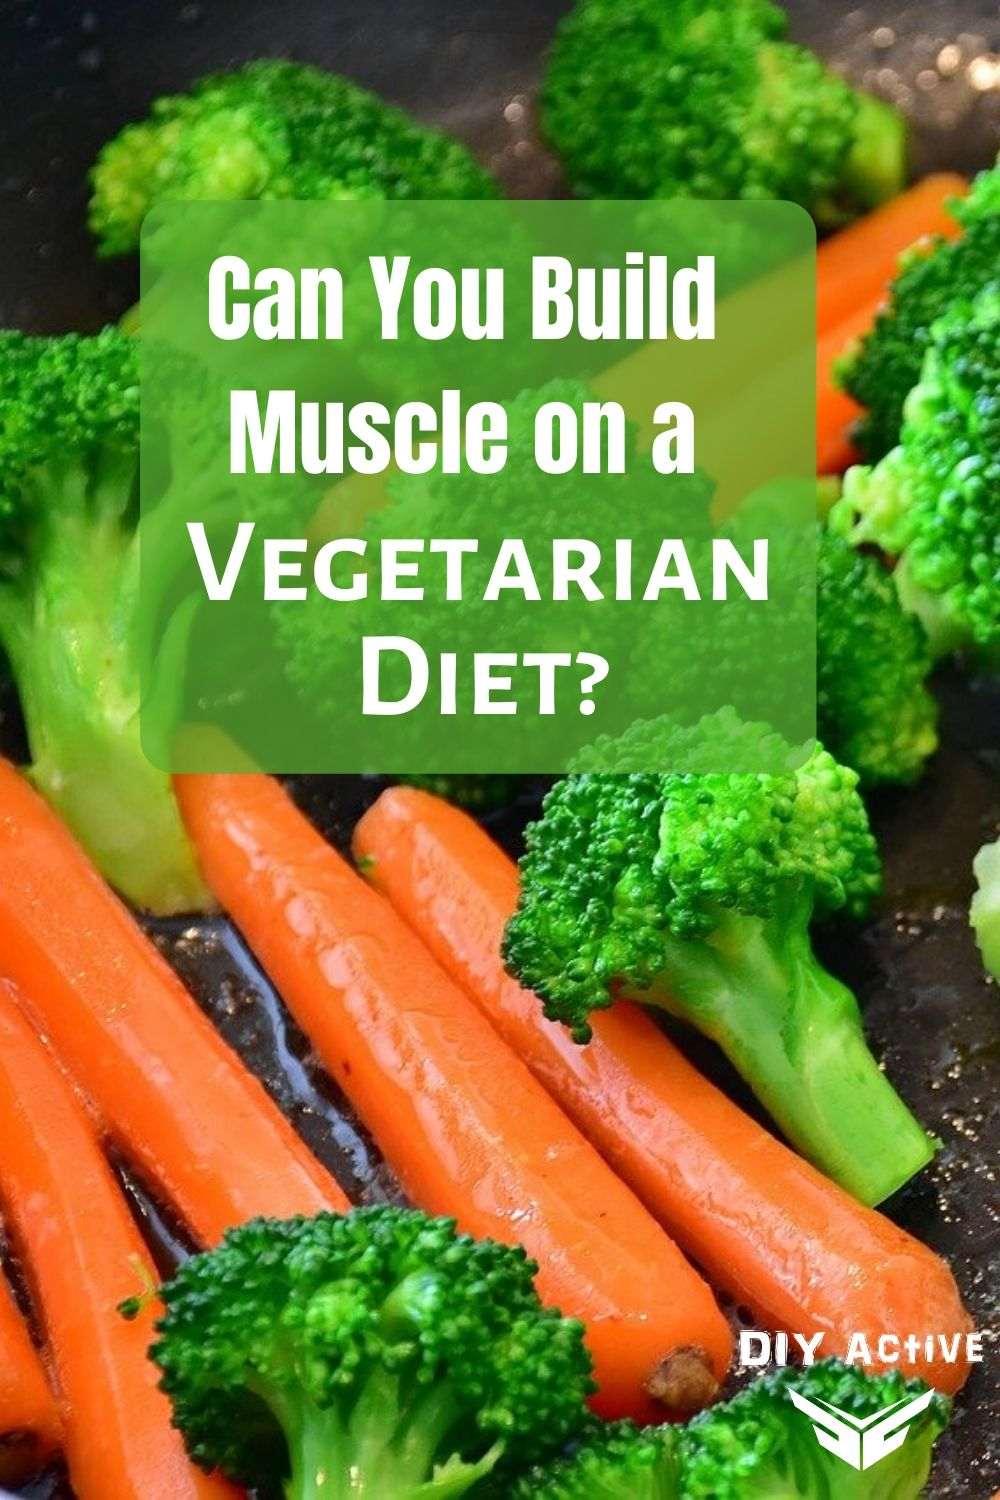 Can You Build Muscle On a Vegetarian Diet